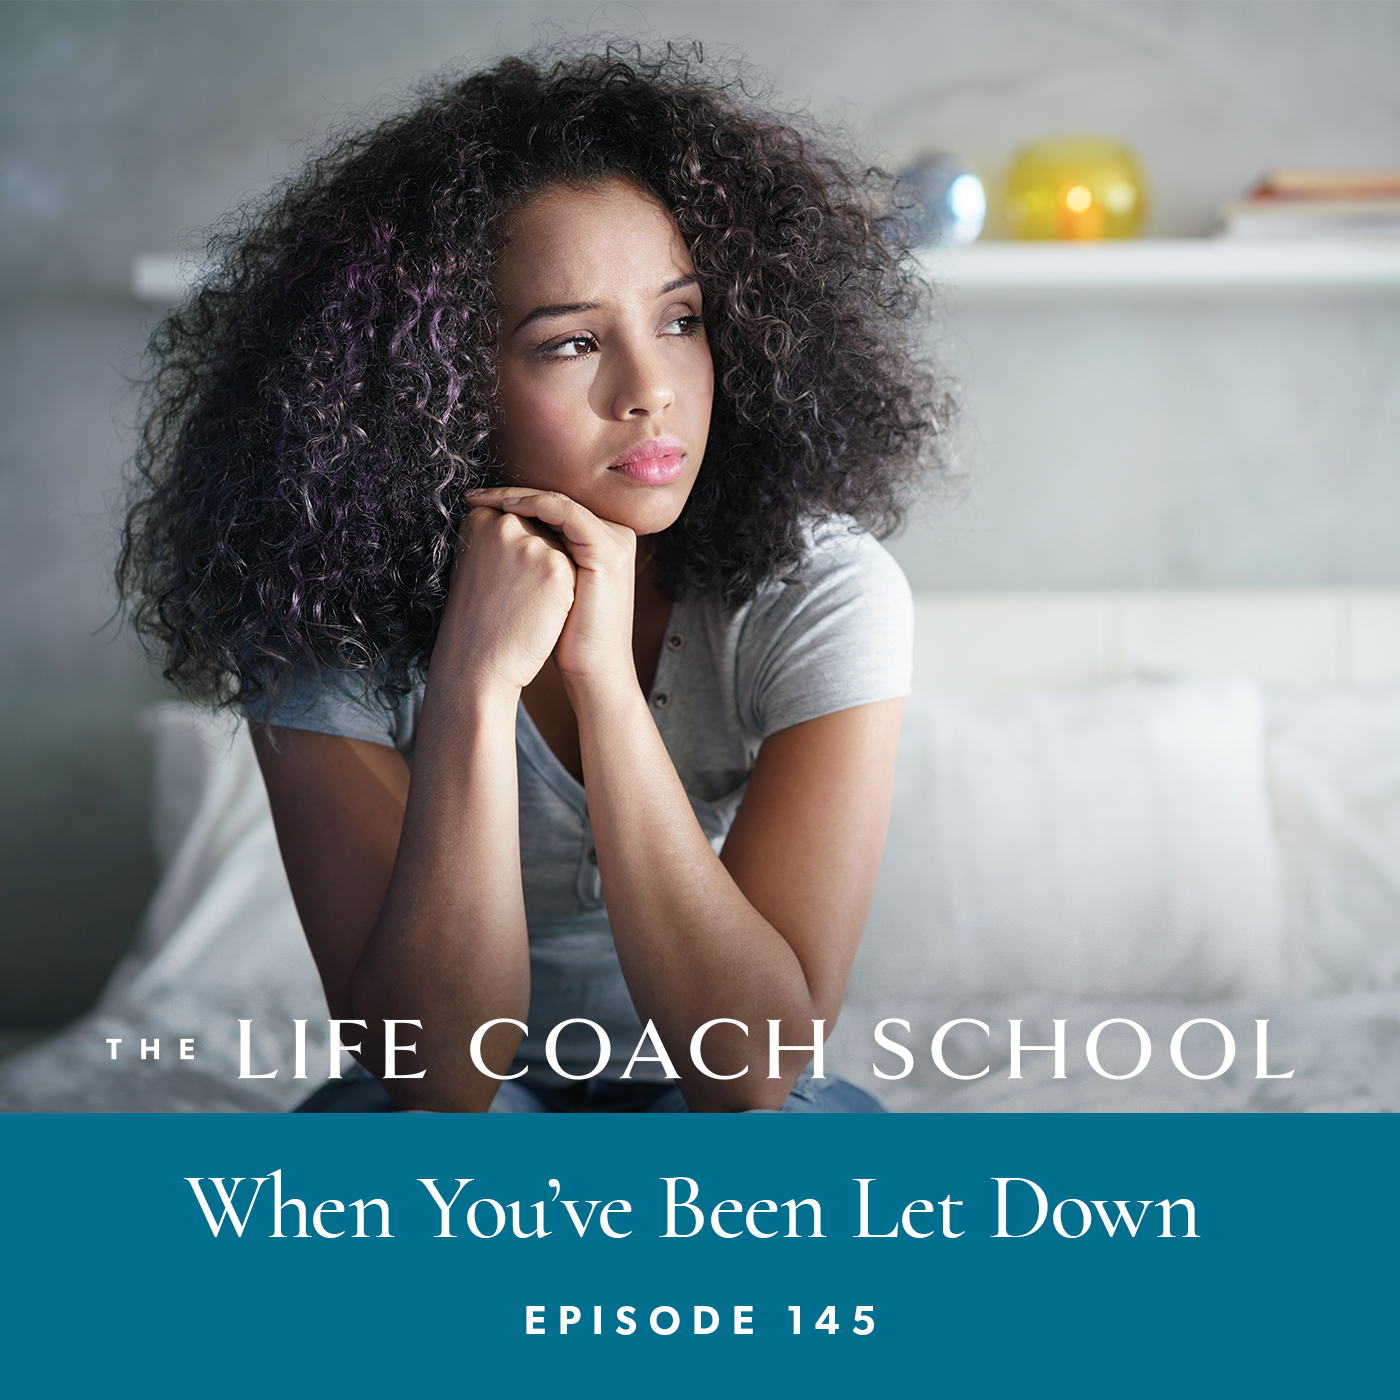 The Life Coach School Podcast with Brooke Castillo | Episode 145 | When You've Been Let Down